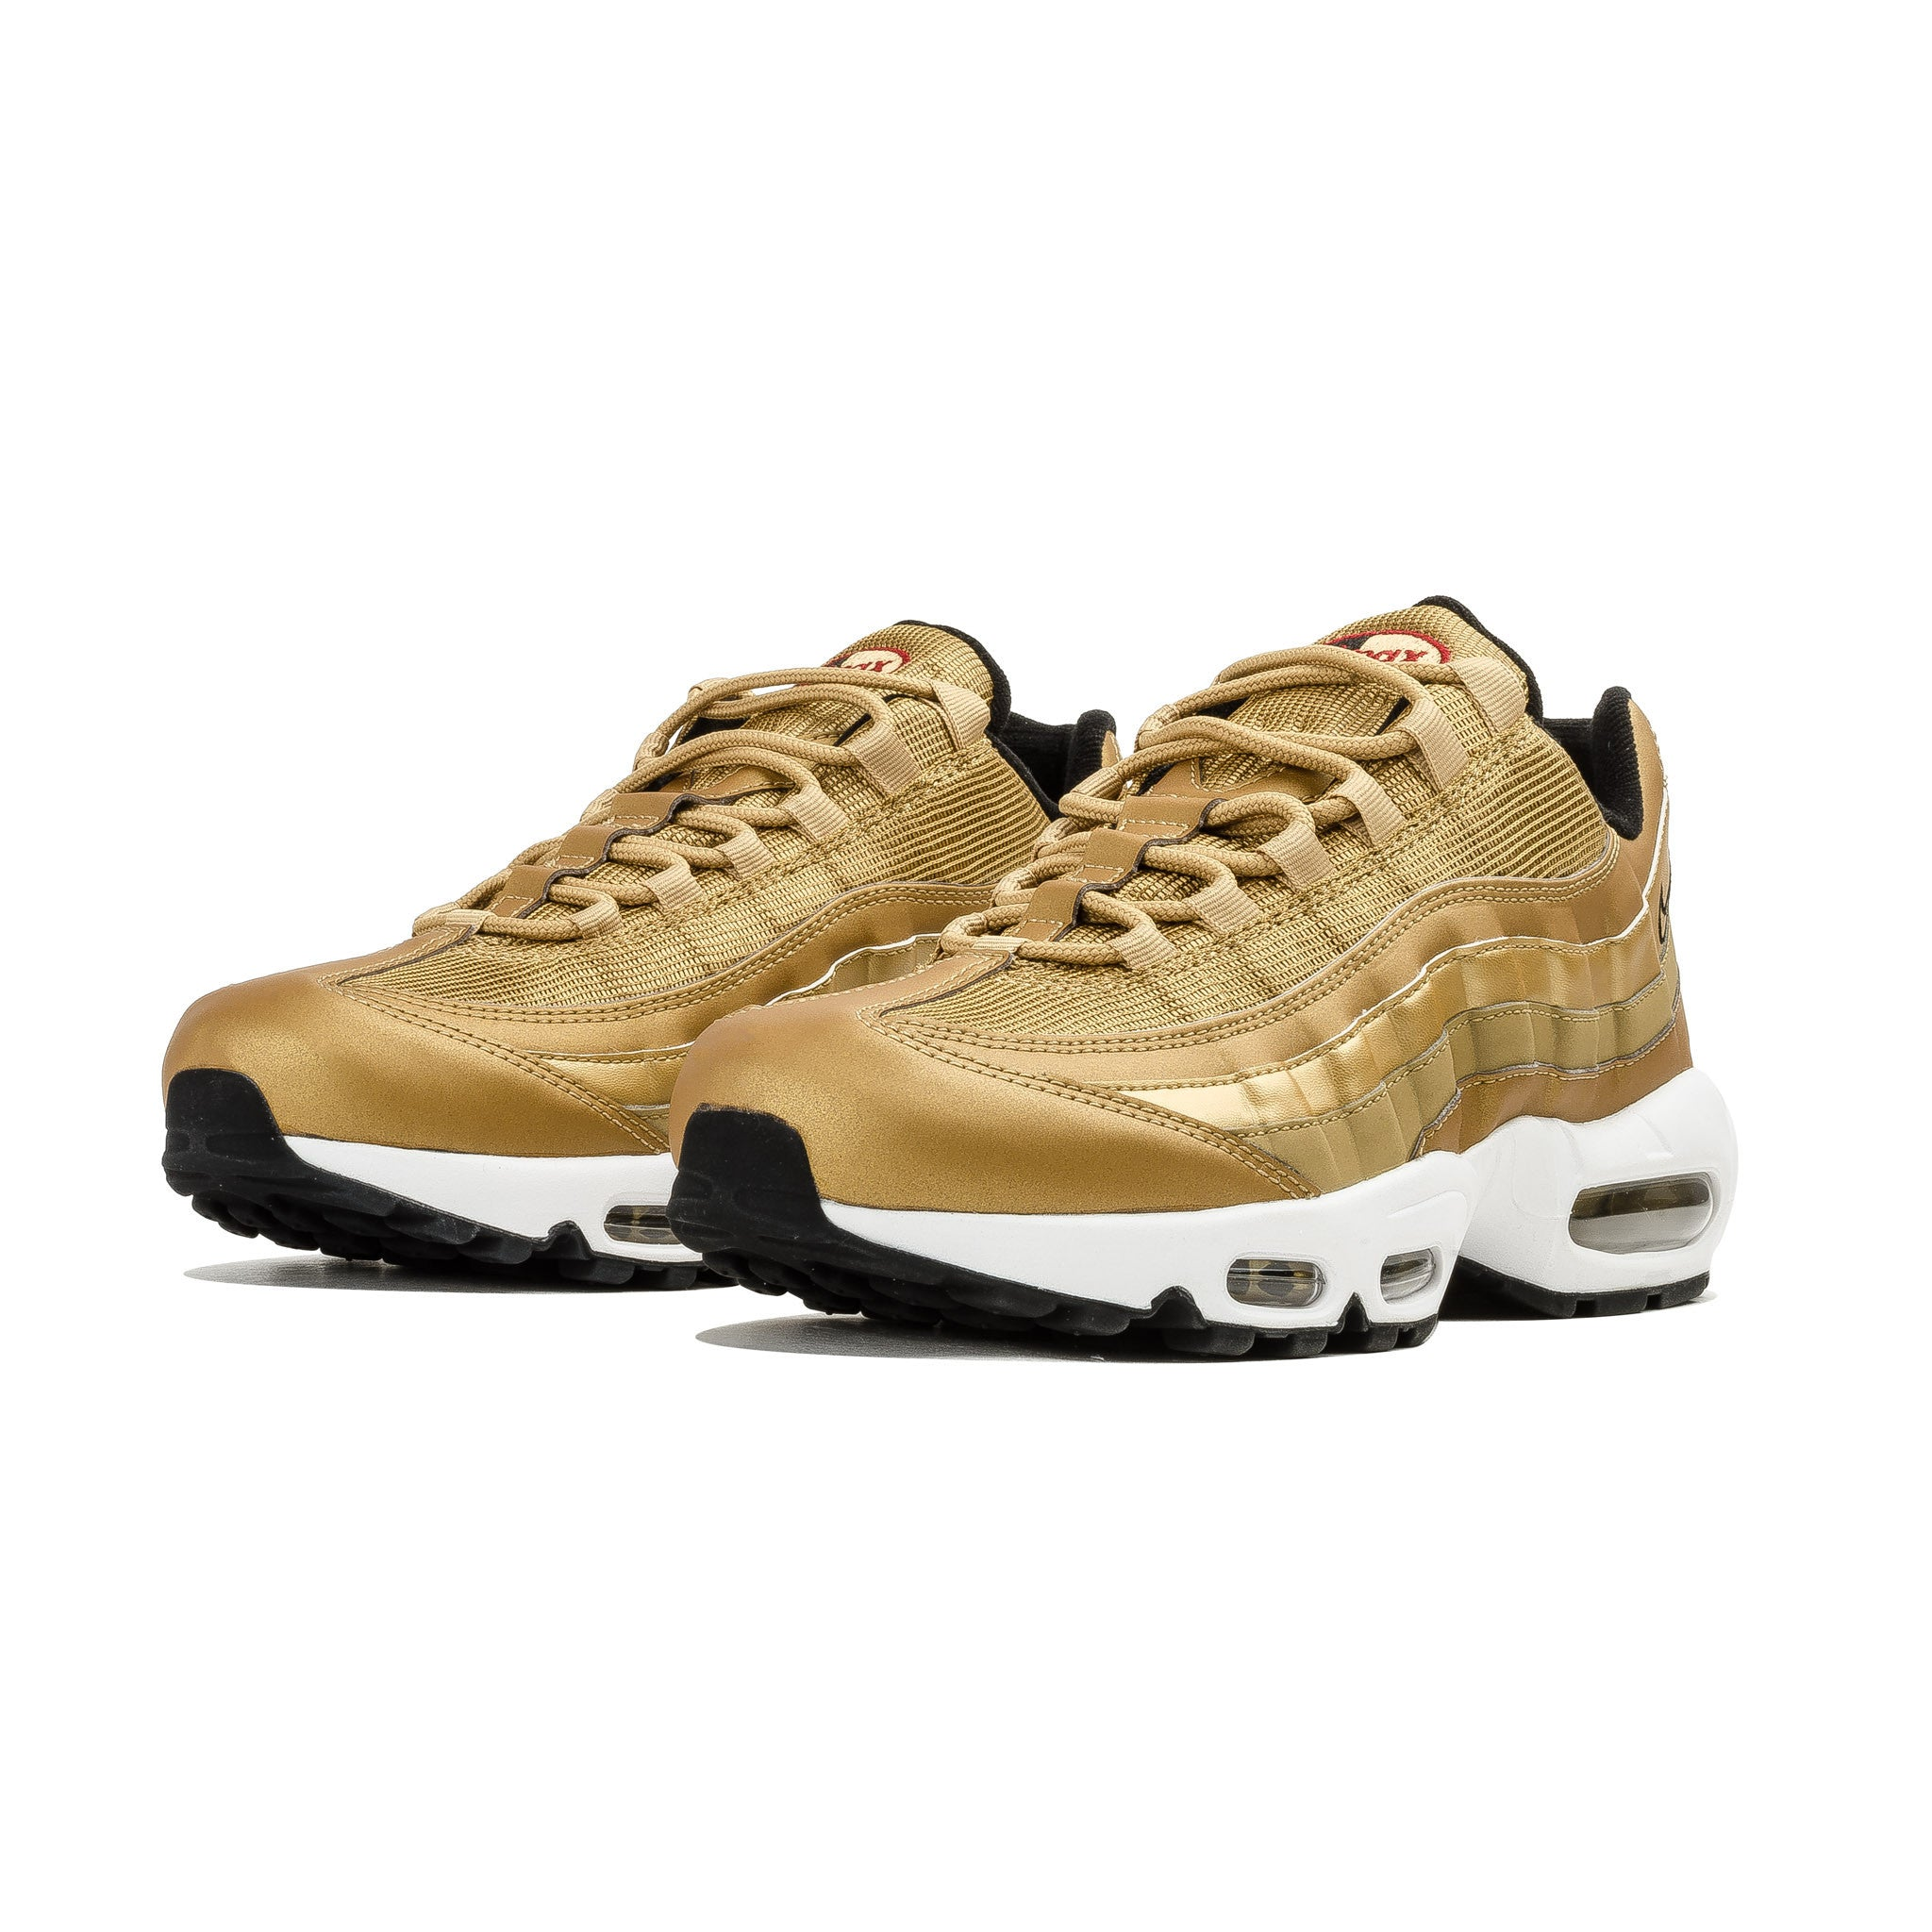 Air Max 95 Premium QS 918359-700 Gold